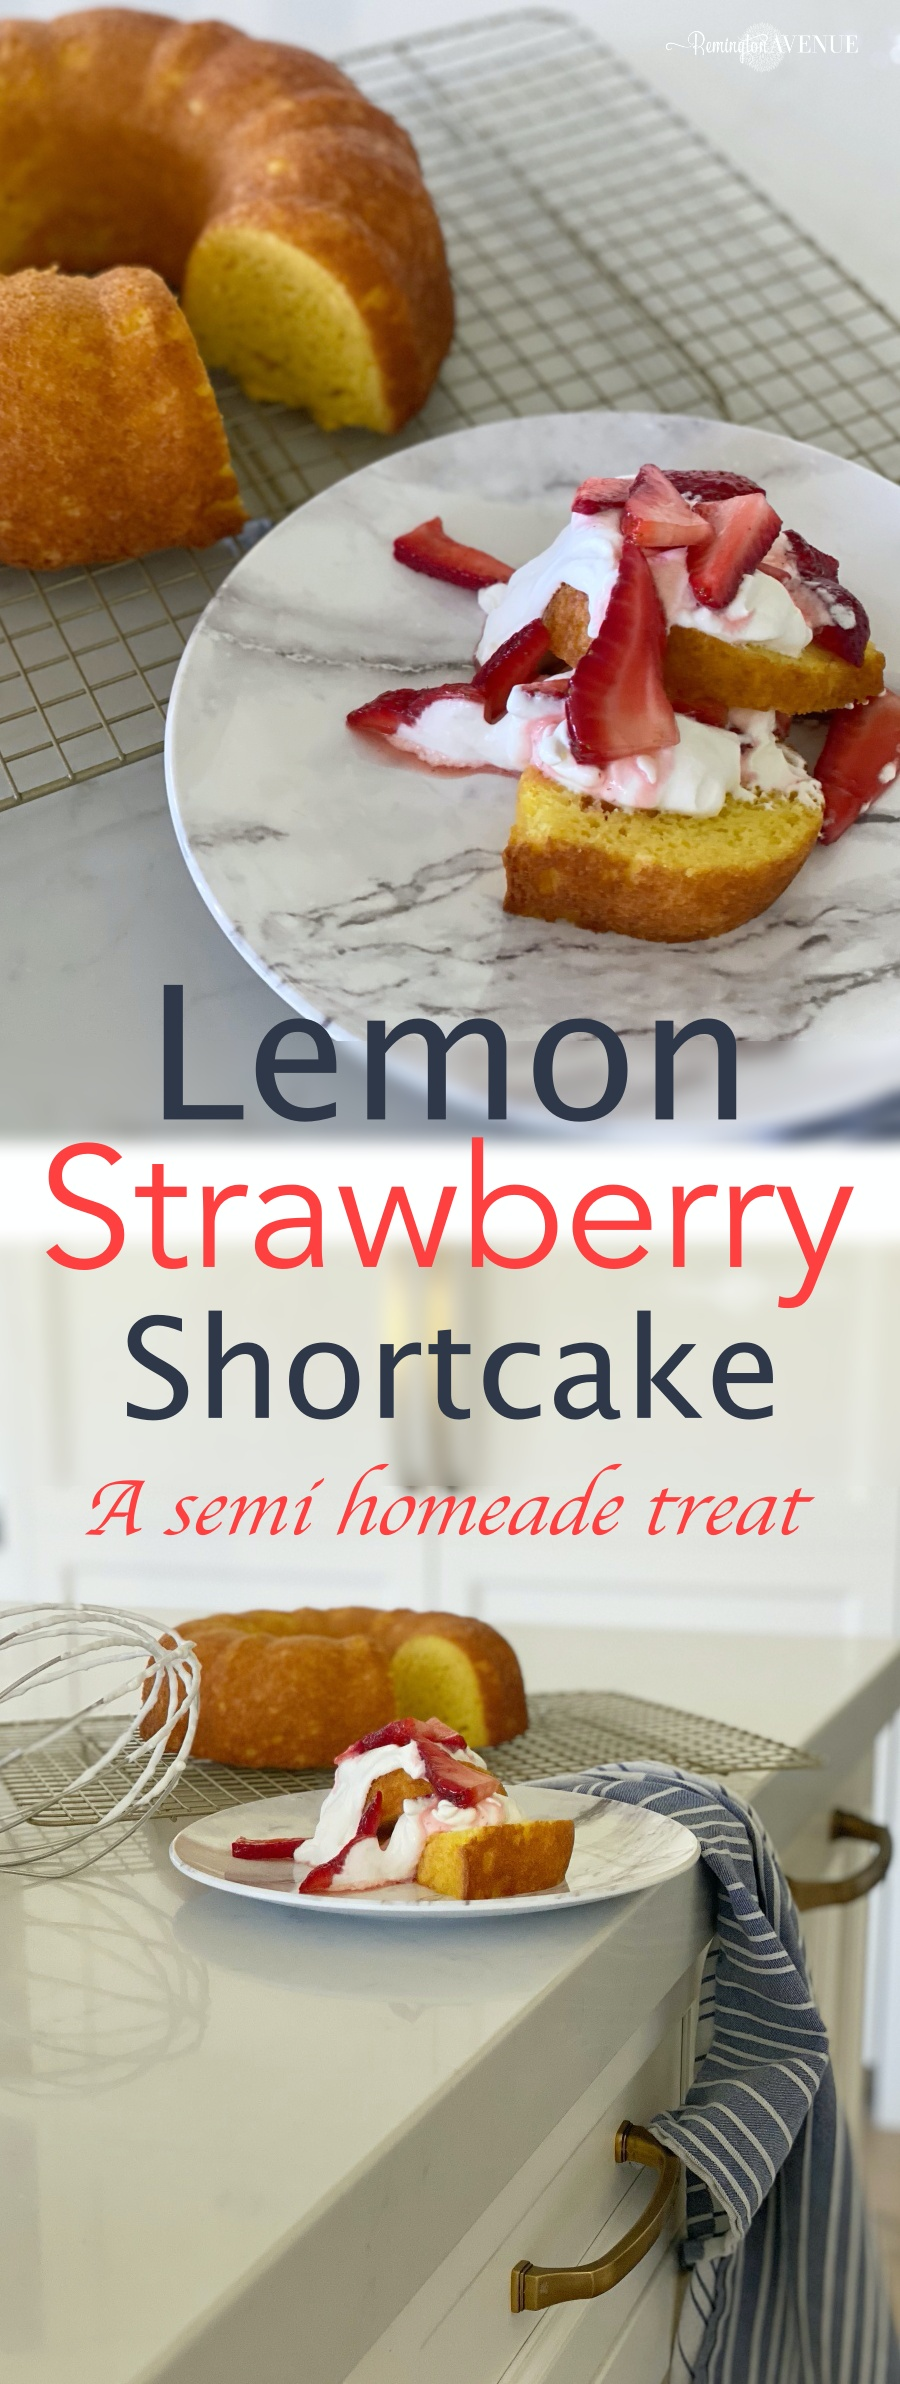 strawberry shortcake with lemon bundt cake recipe